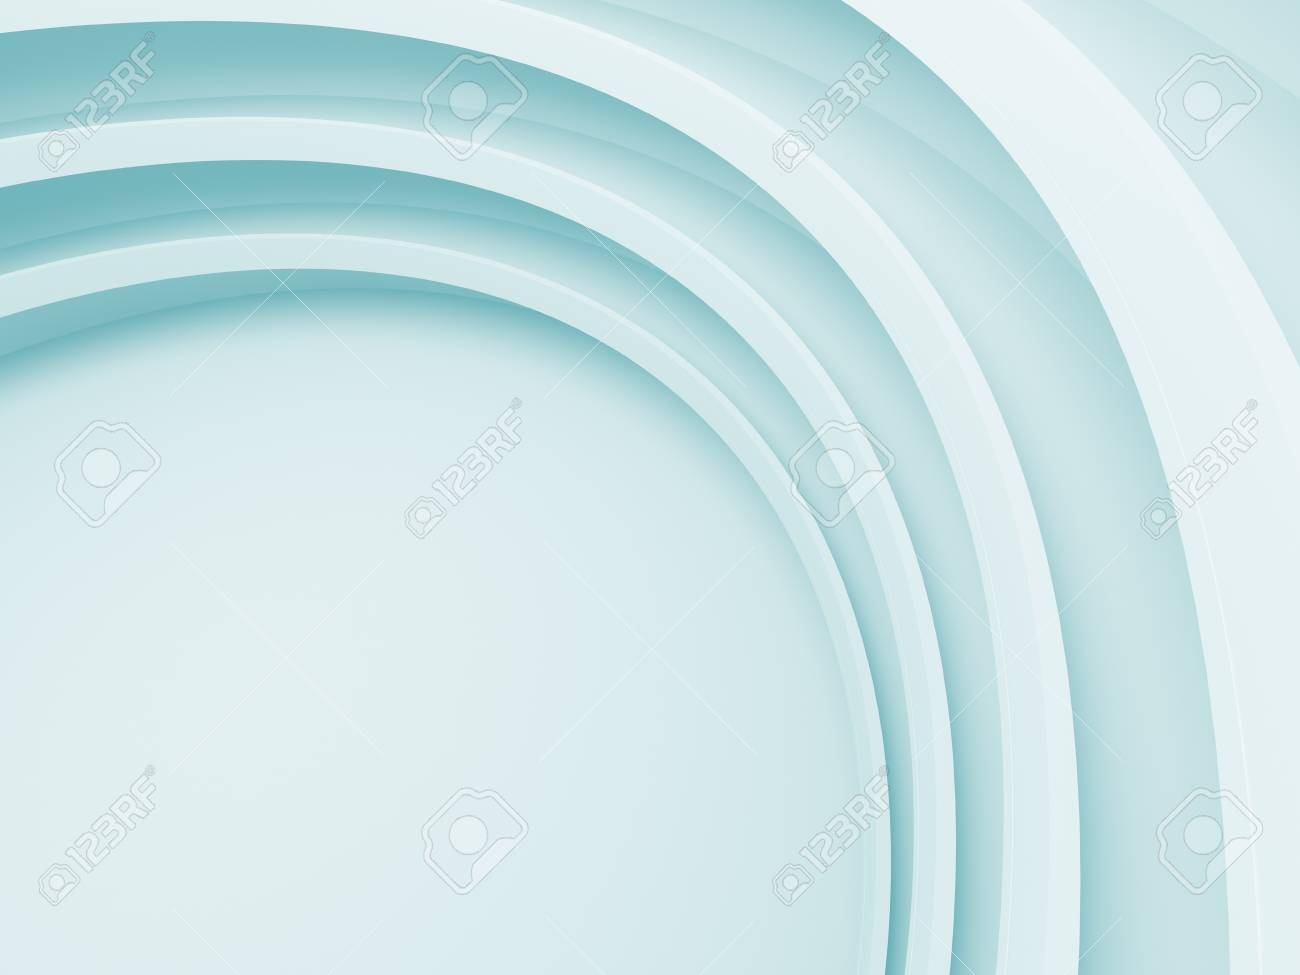 Abstract Architecture Background Stock Photo - 7910425